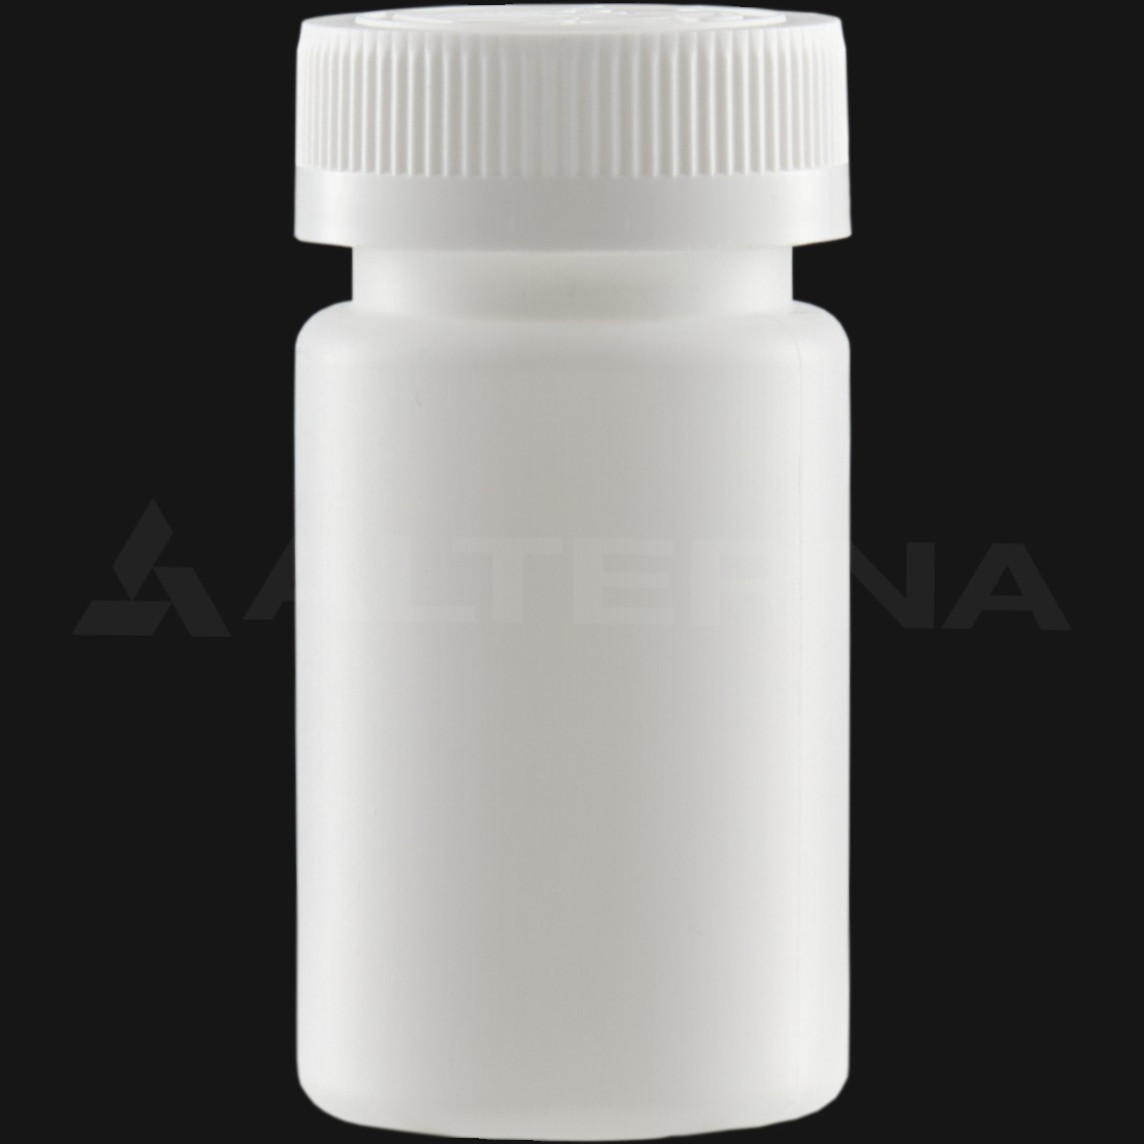 90 ml HDPE Pill Bottle with 38 mm Child Resistant Cap